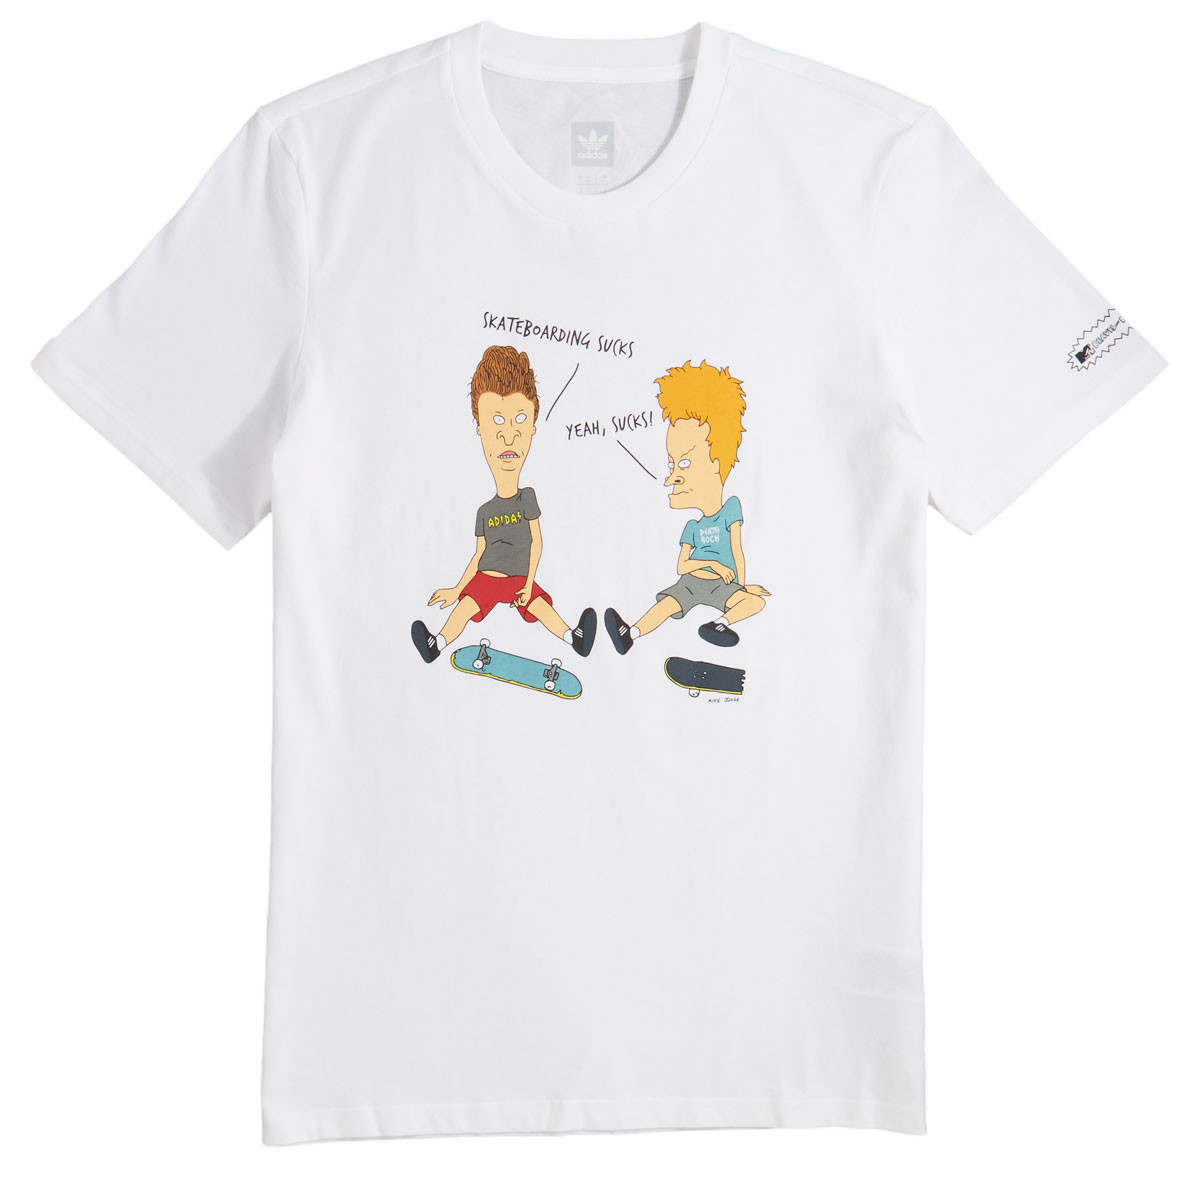 huge selection of d9d10 99127 Adidas x Beavis And Butthead T-Shirt - White/Multi